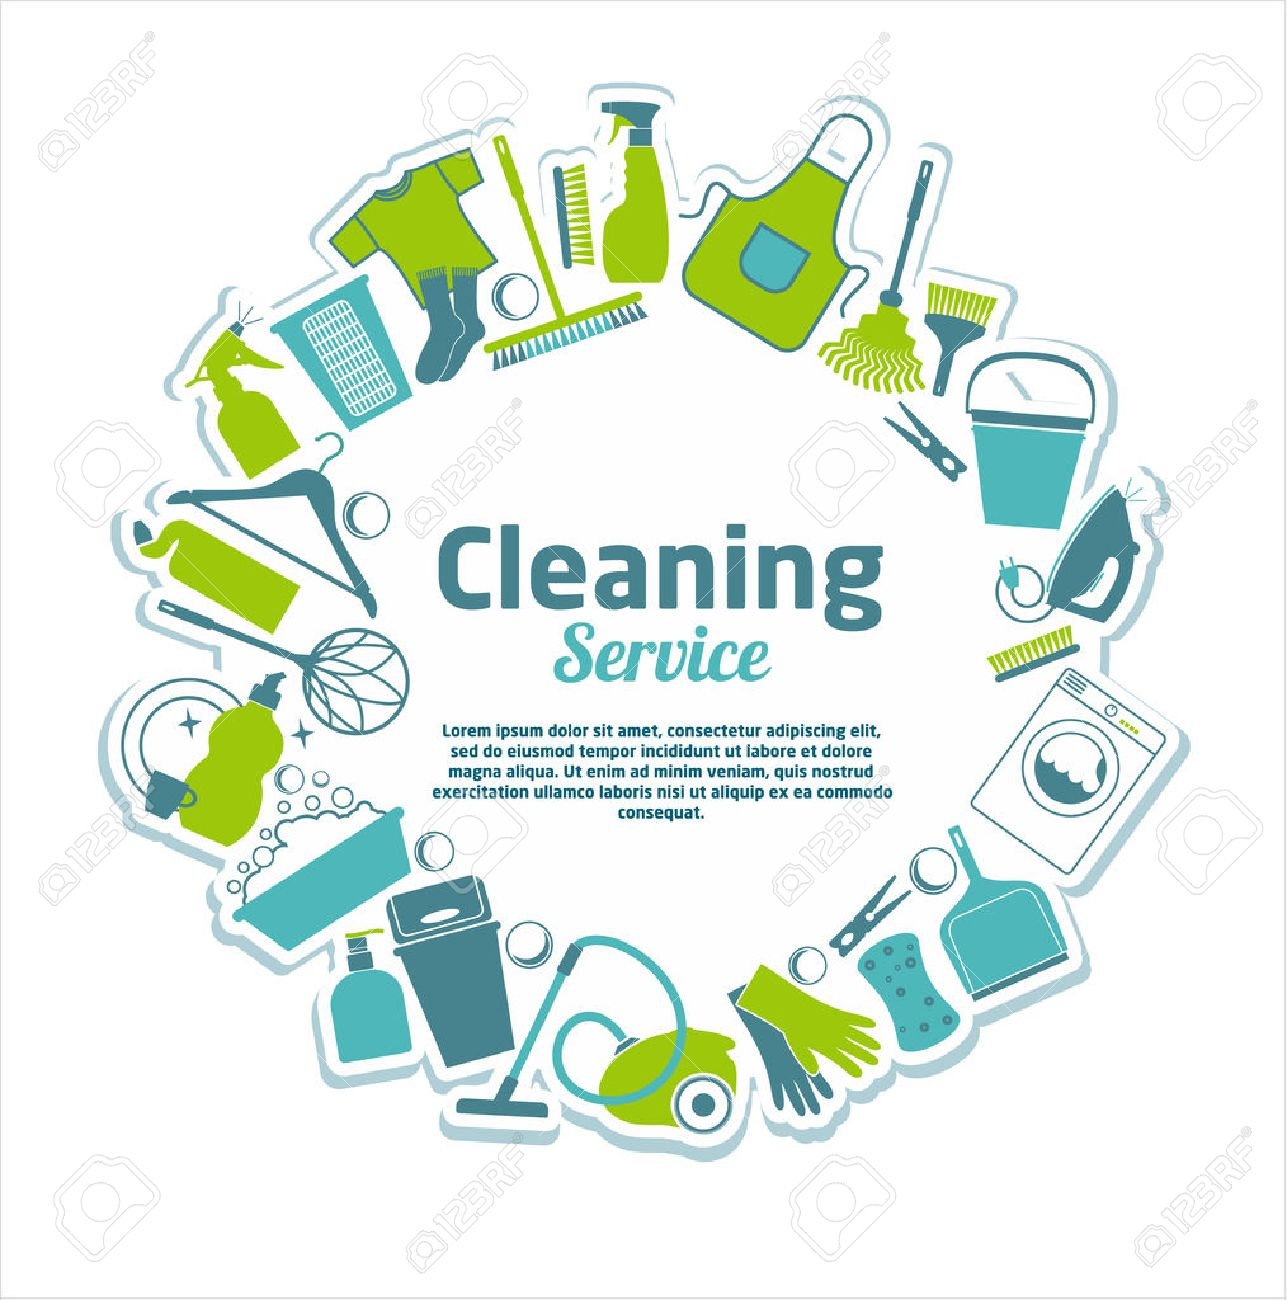 Cleaning service illustration. - 33754122